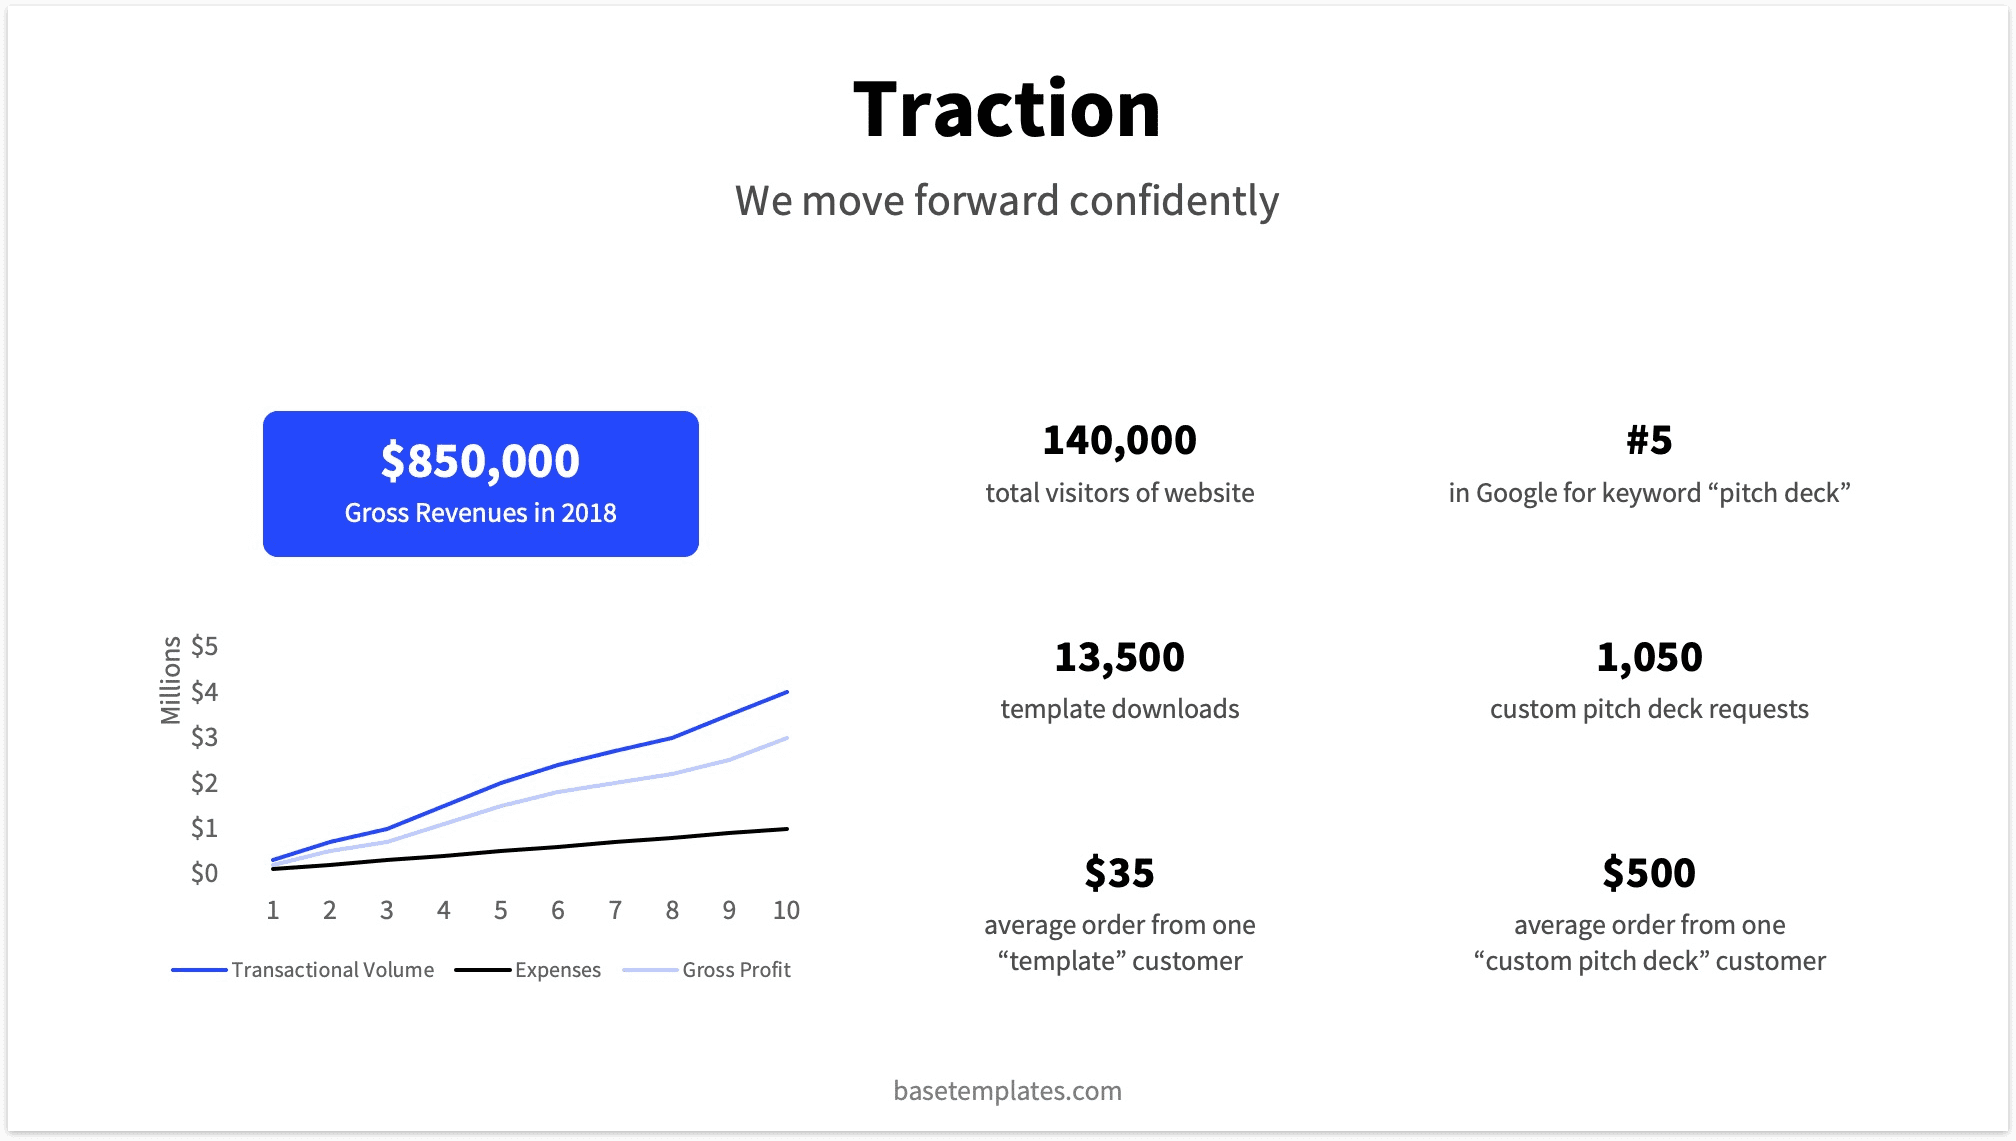 Traction slide example with a graph showing the company's growth